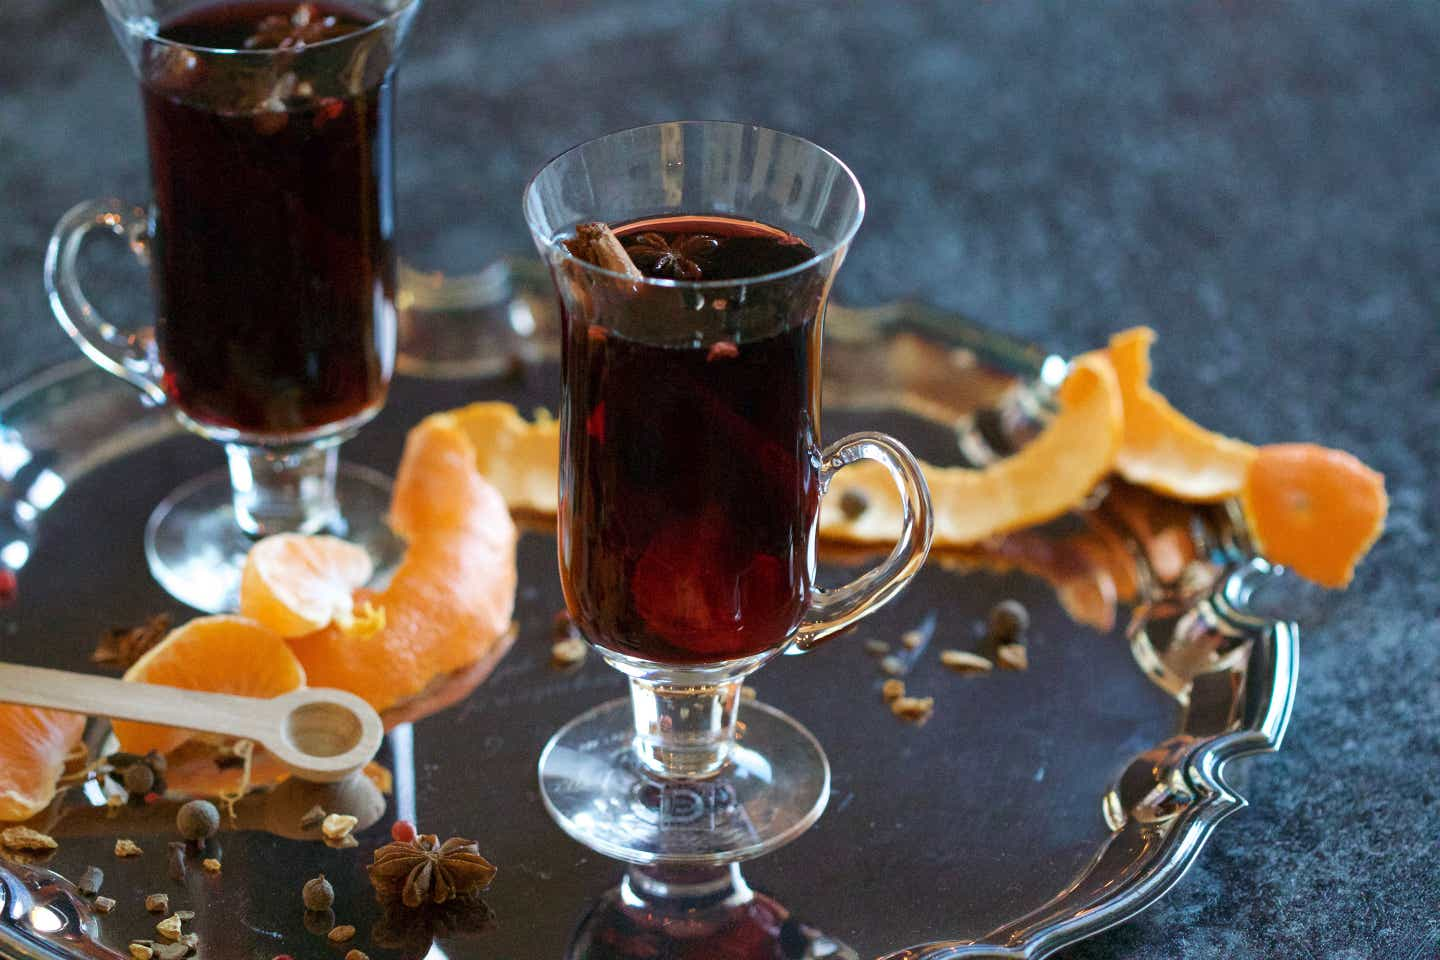 Mulled wine served in a glass mug surrounded by orange peel spirals on top of a silver serving platter.